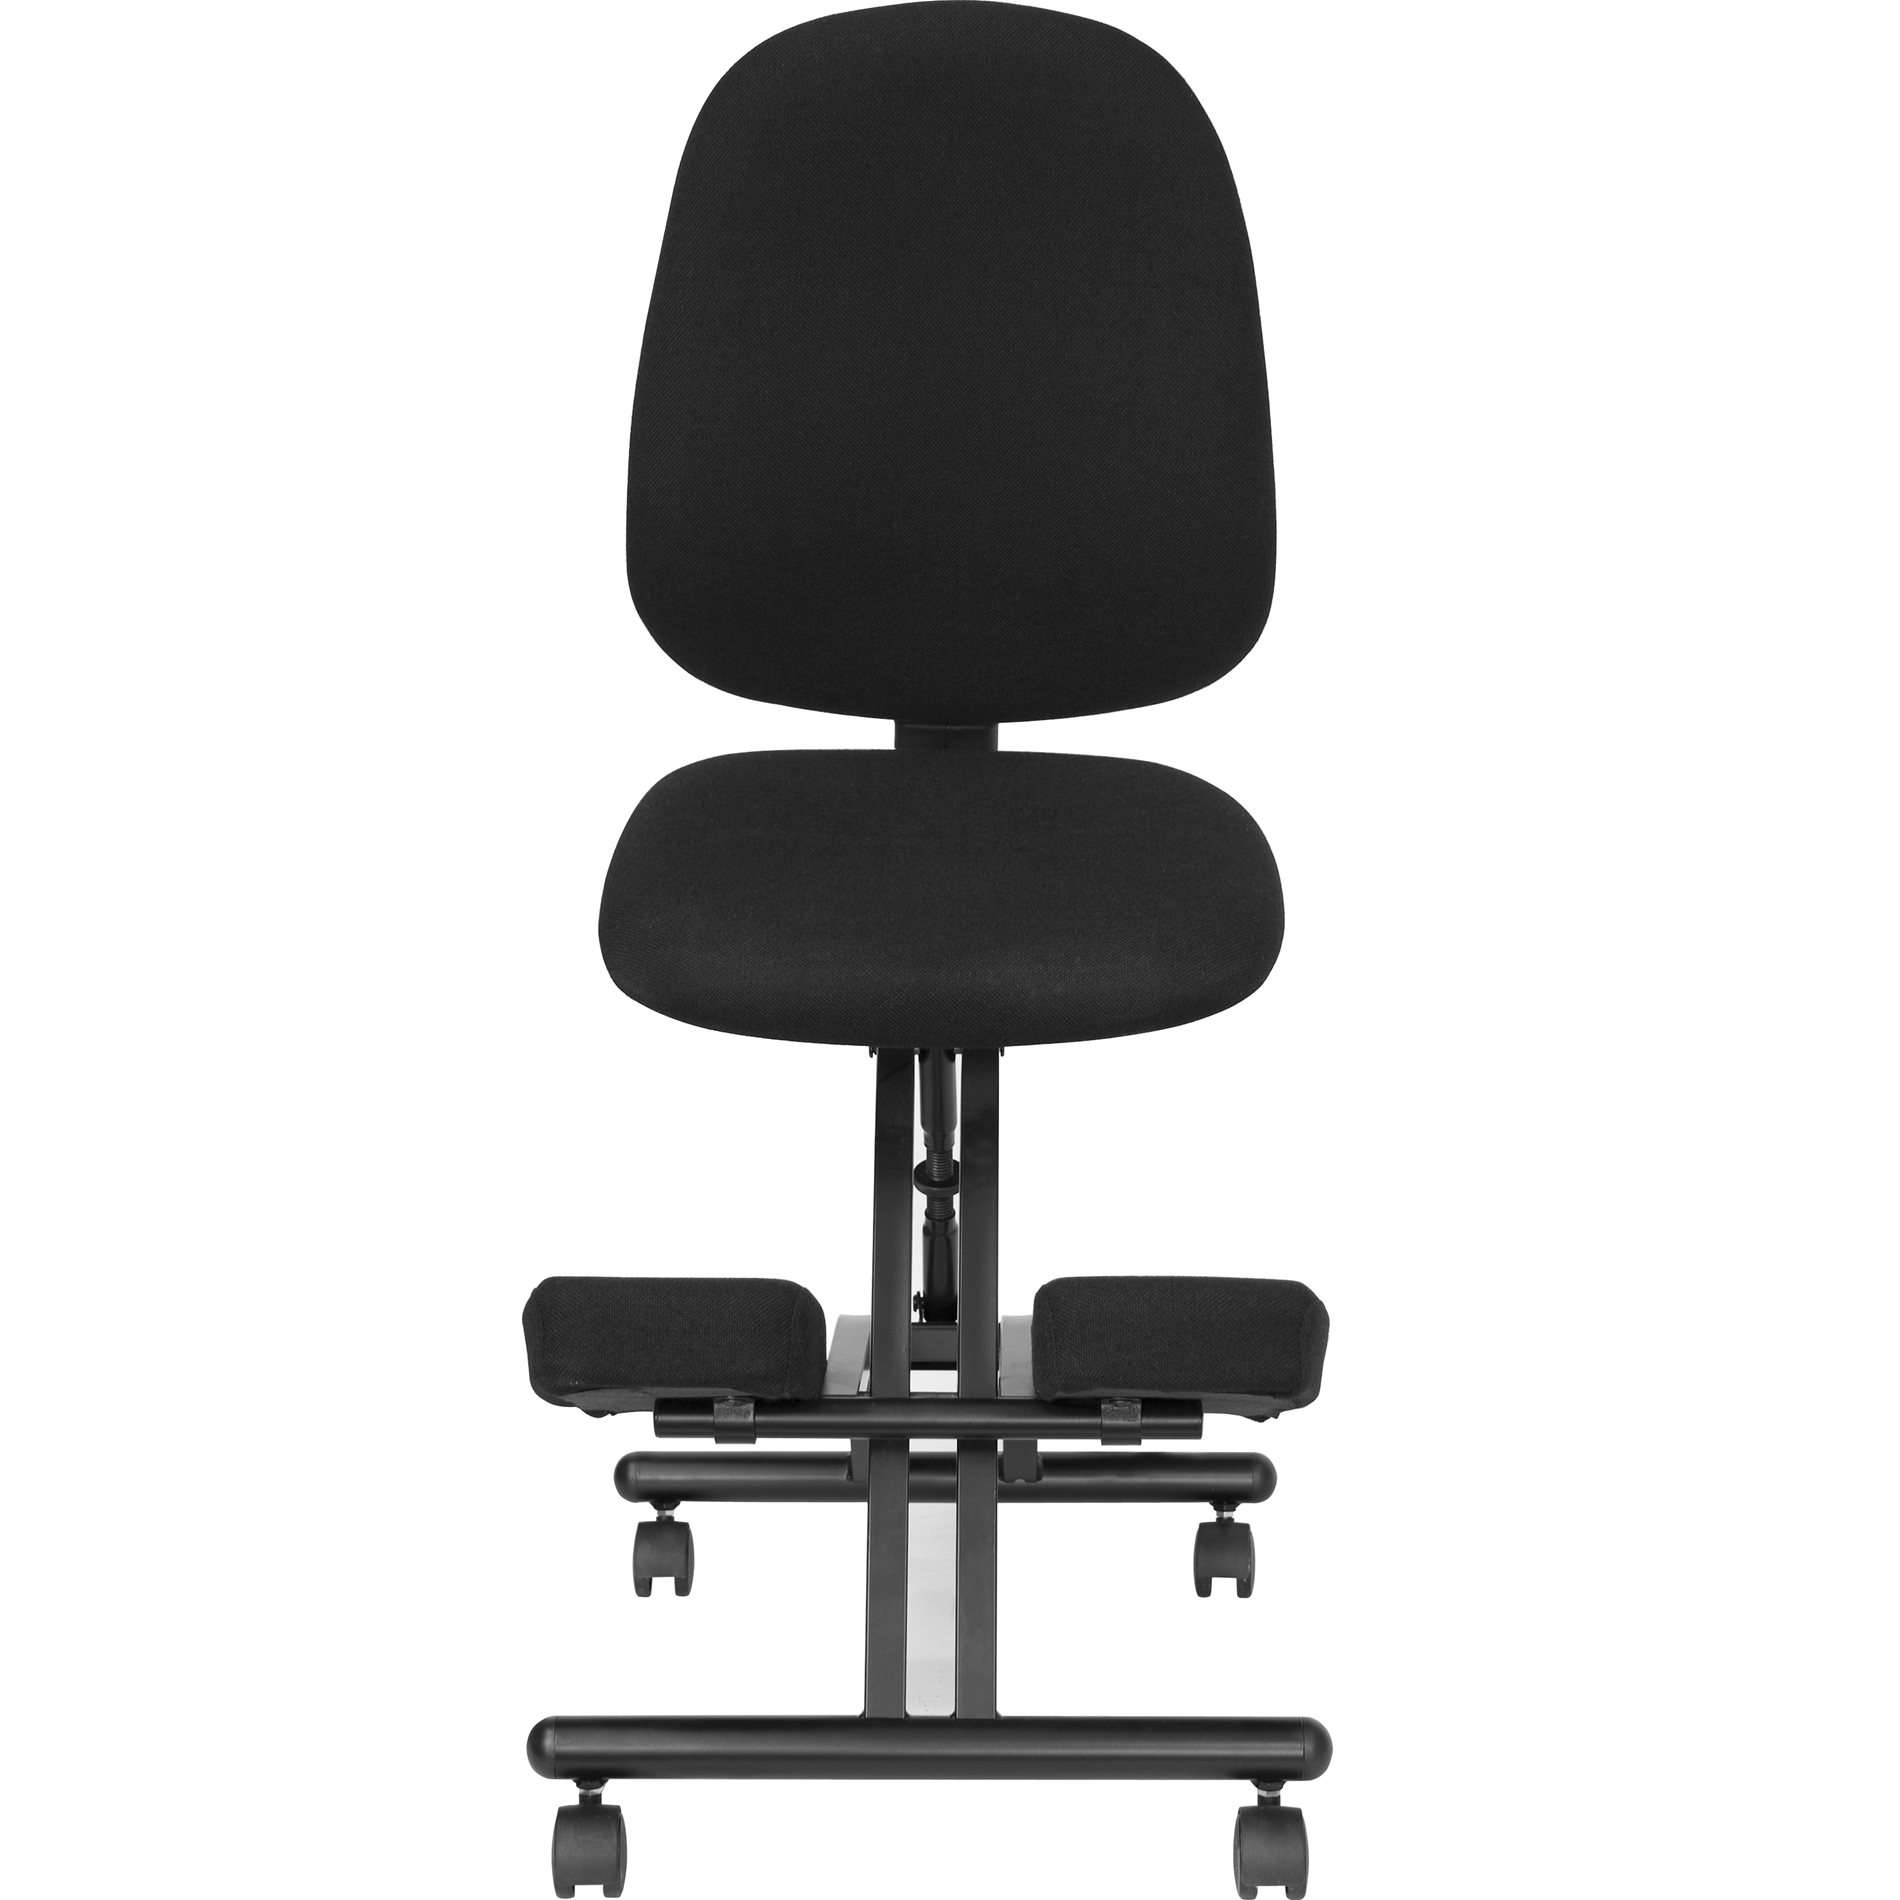 Ergonomic Chair Kneeling Ergonomic Kneeling Posture Office Chair With Back Black